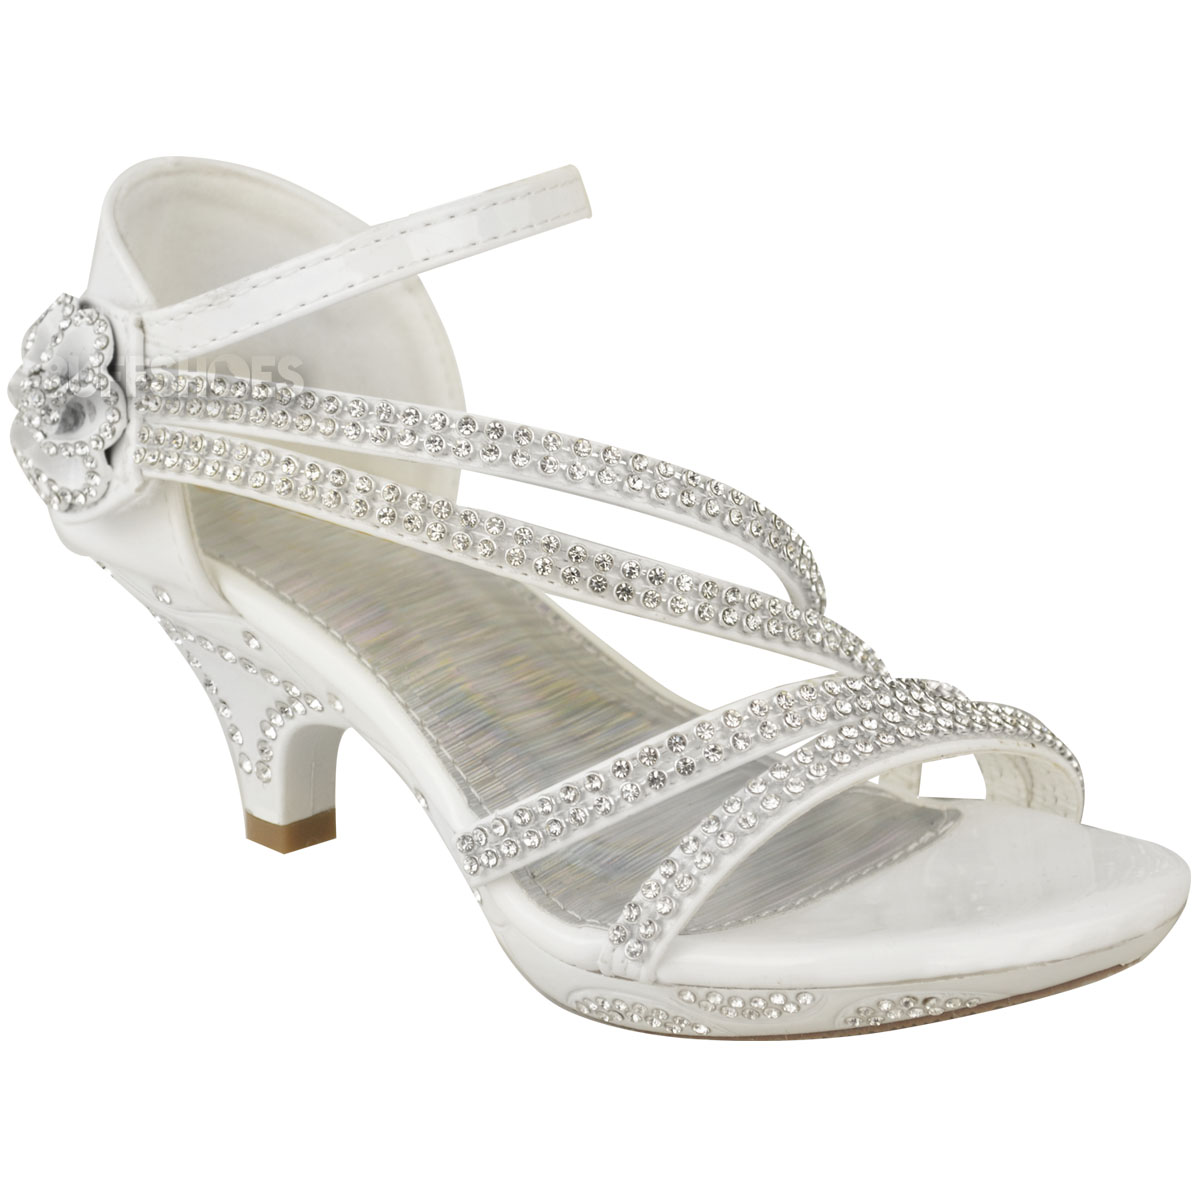 Petwer diamante Party shoes / sandals MfROgz